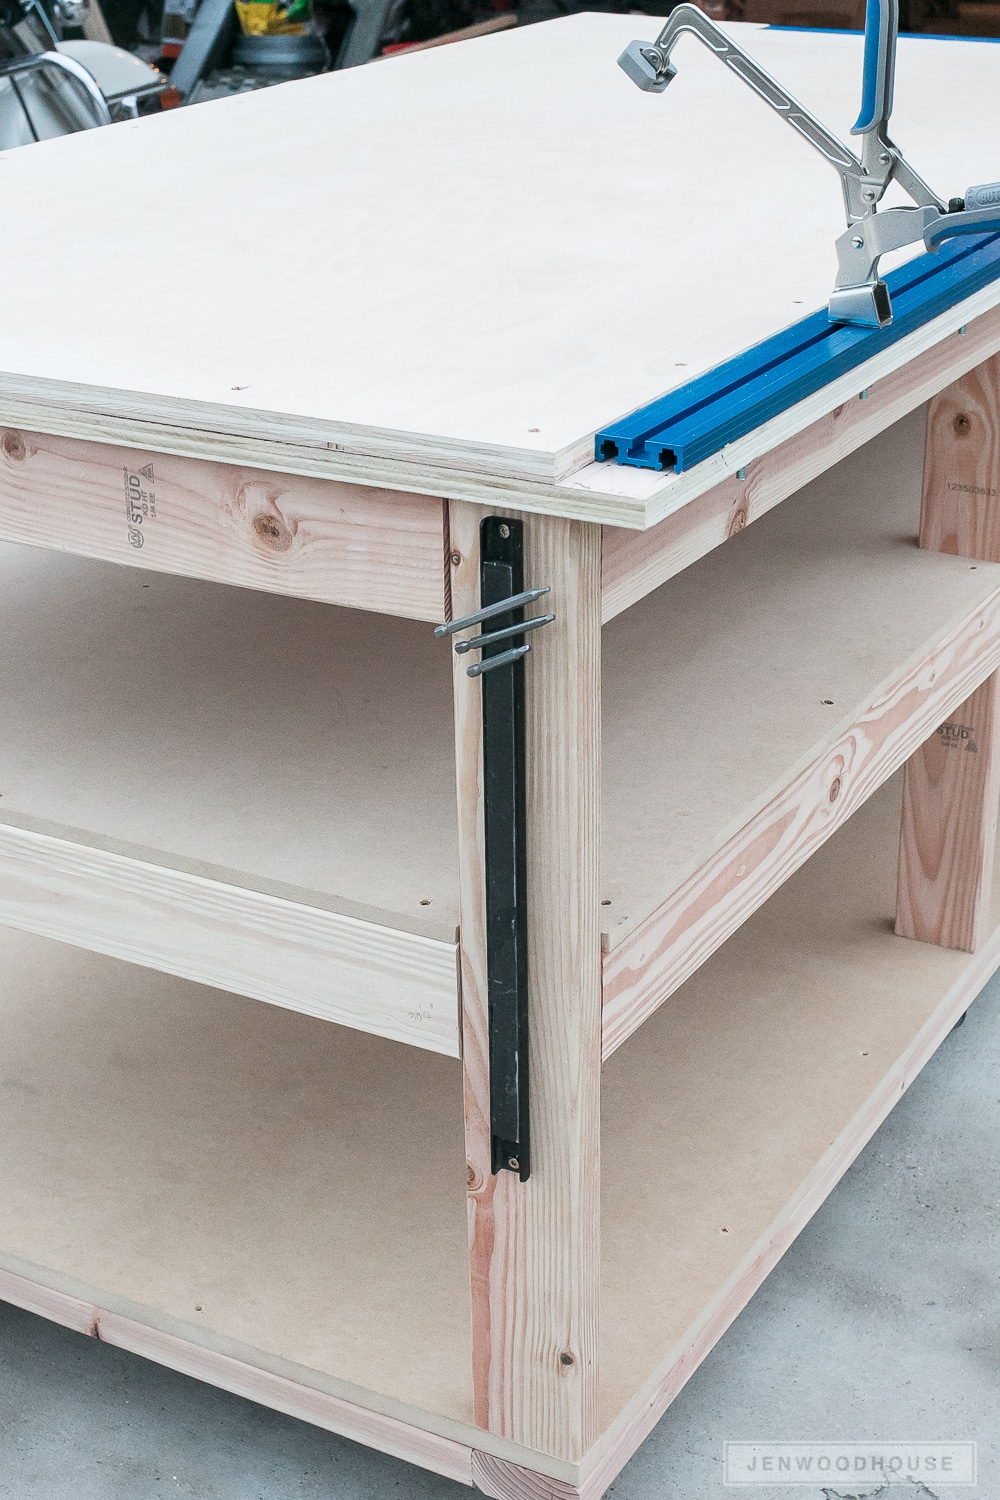 Diy Workbench With Wheels How To Build A Diy Mobile Workbench With Shelves